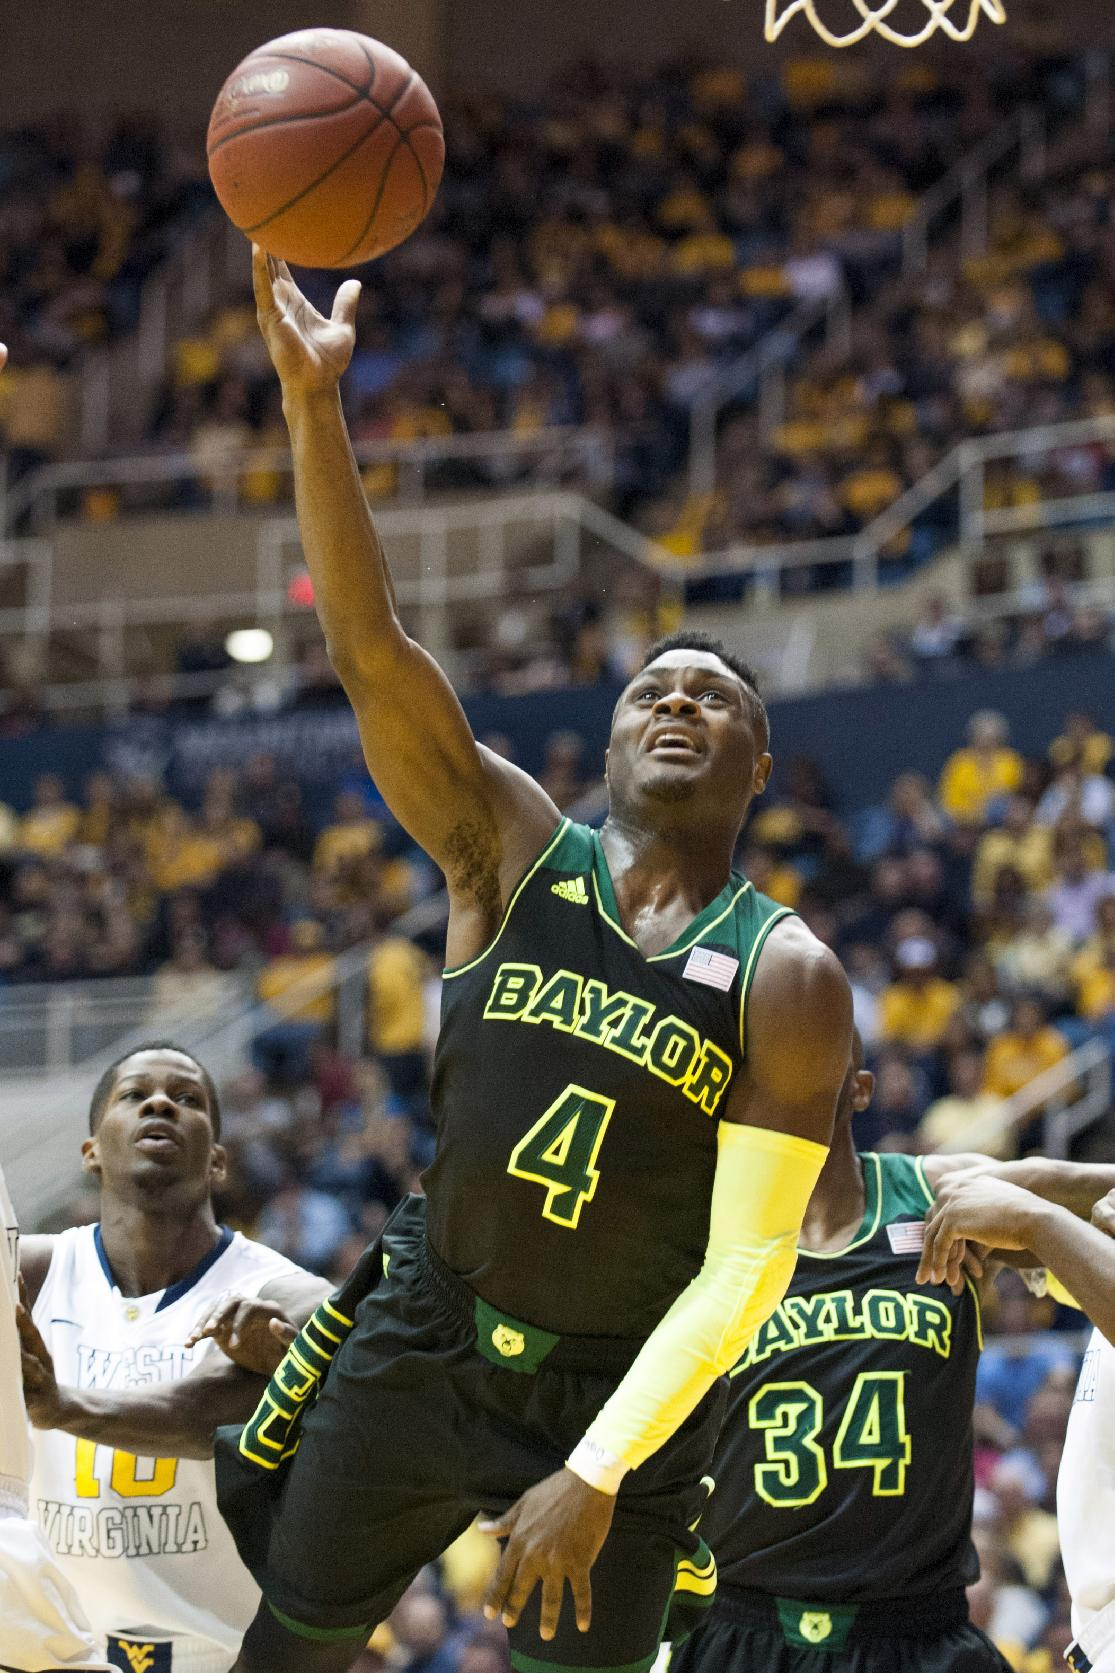 Baylor's Gary Franklin (4) drives to the basket during the second half of an NCAA college basketball game Saturday, Feb. 22, 2014, in Morgantown, W.Va. Baylor won 88-75